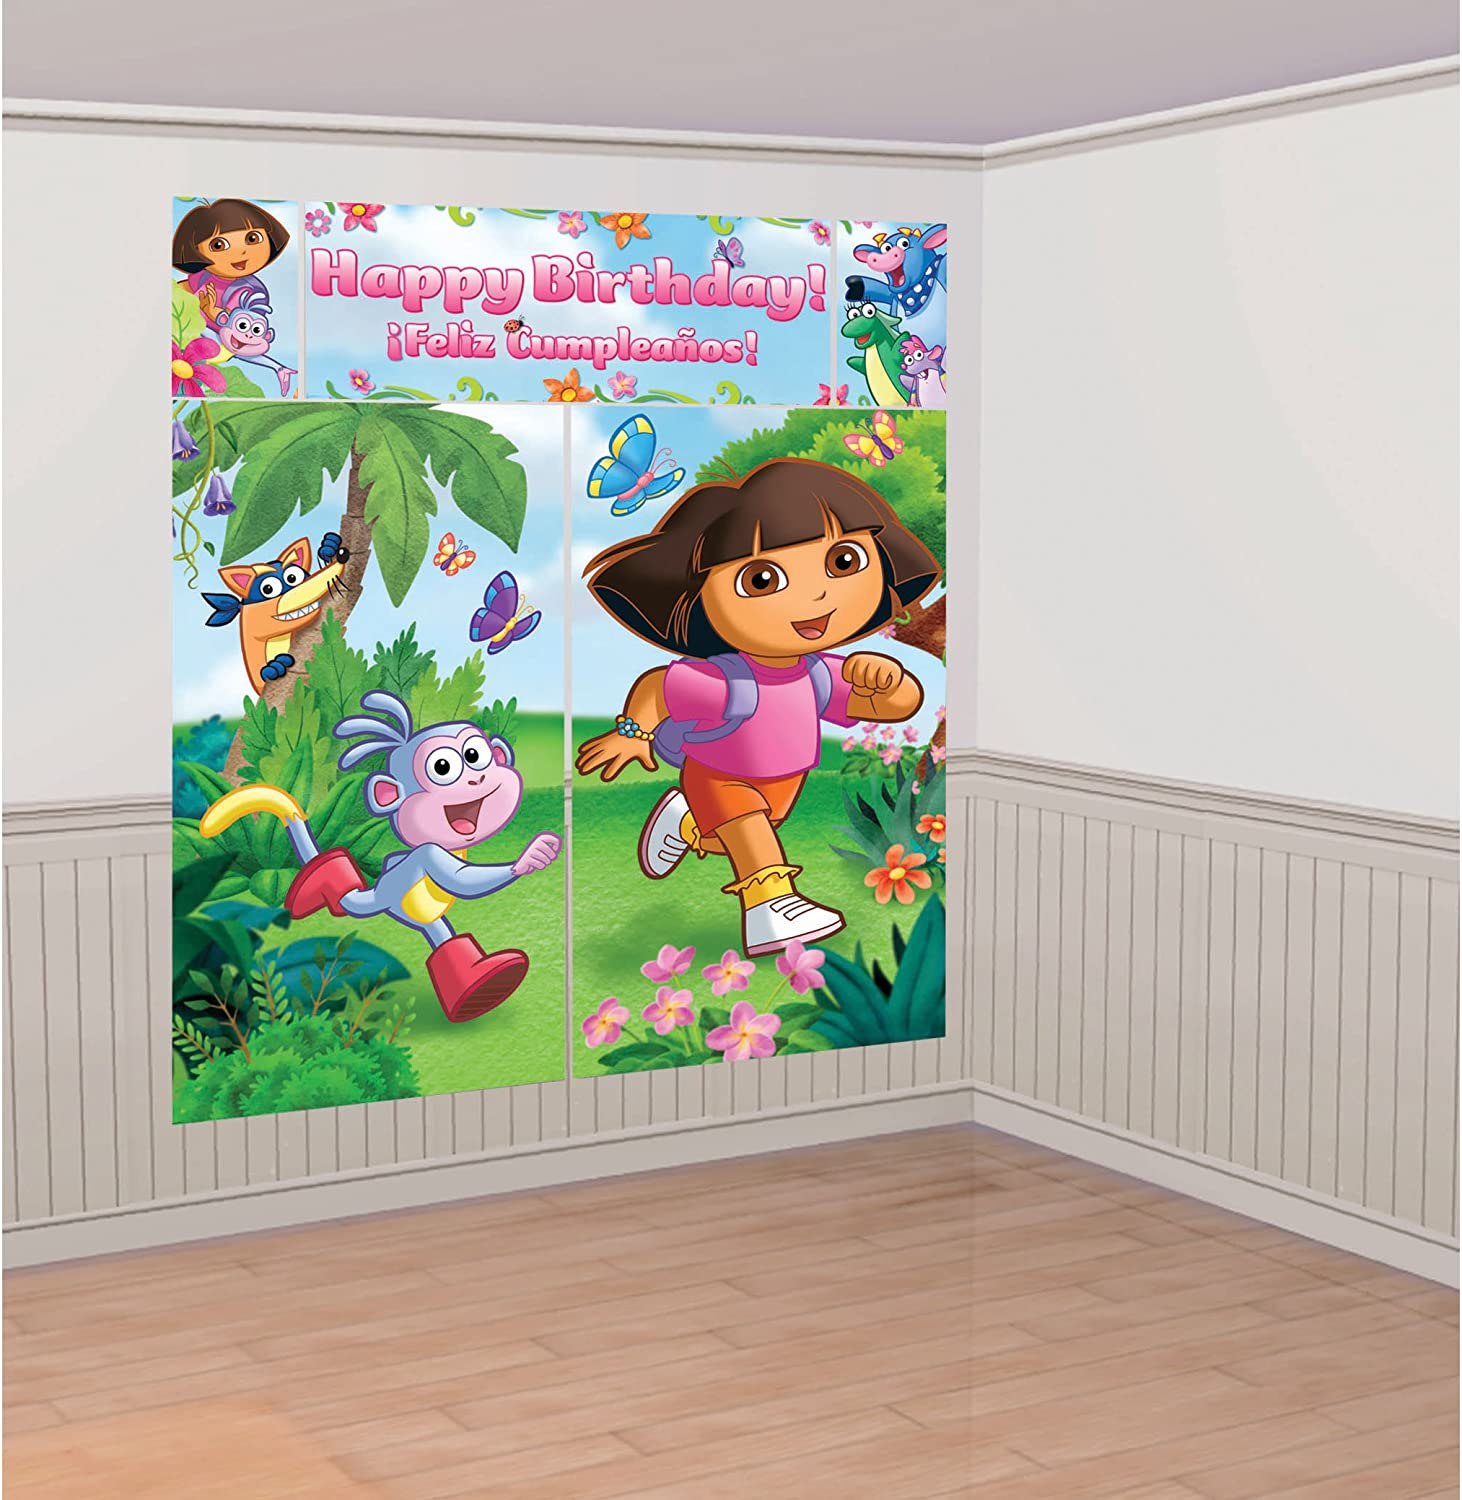 Dora Table Decorating Kit Happy Birthday LARGE with Boots Monkey